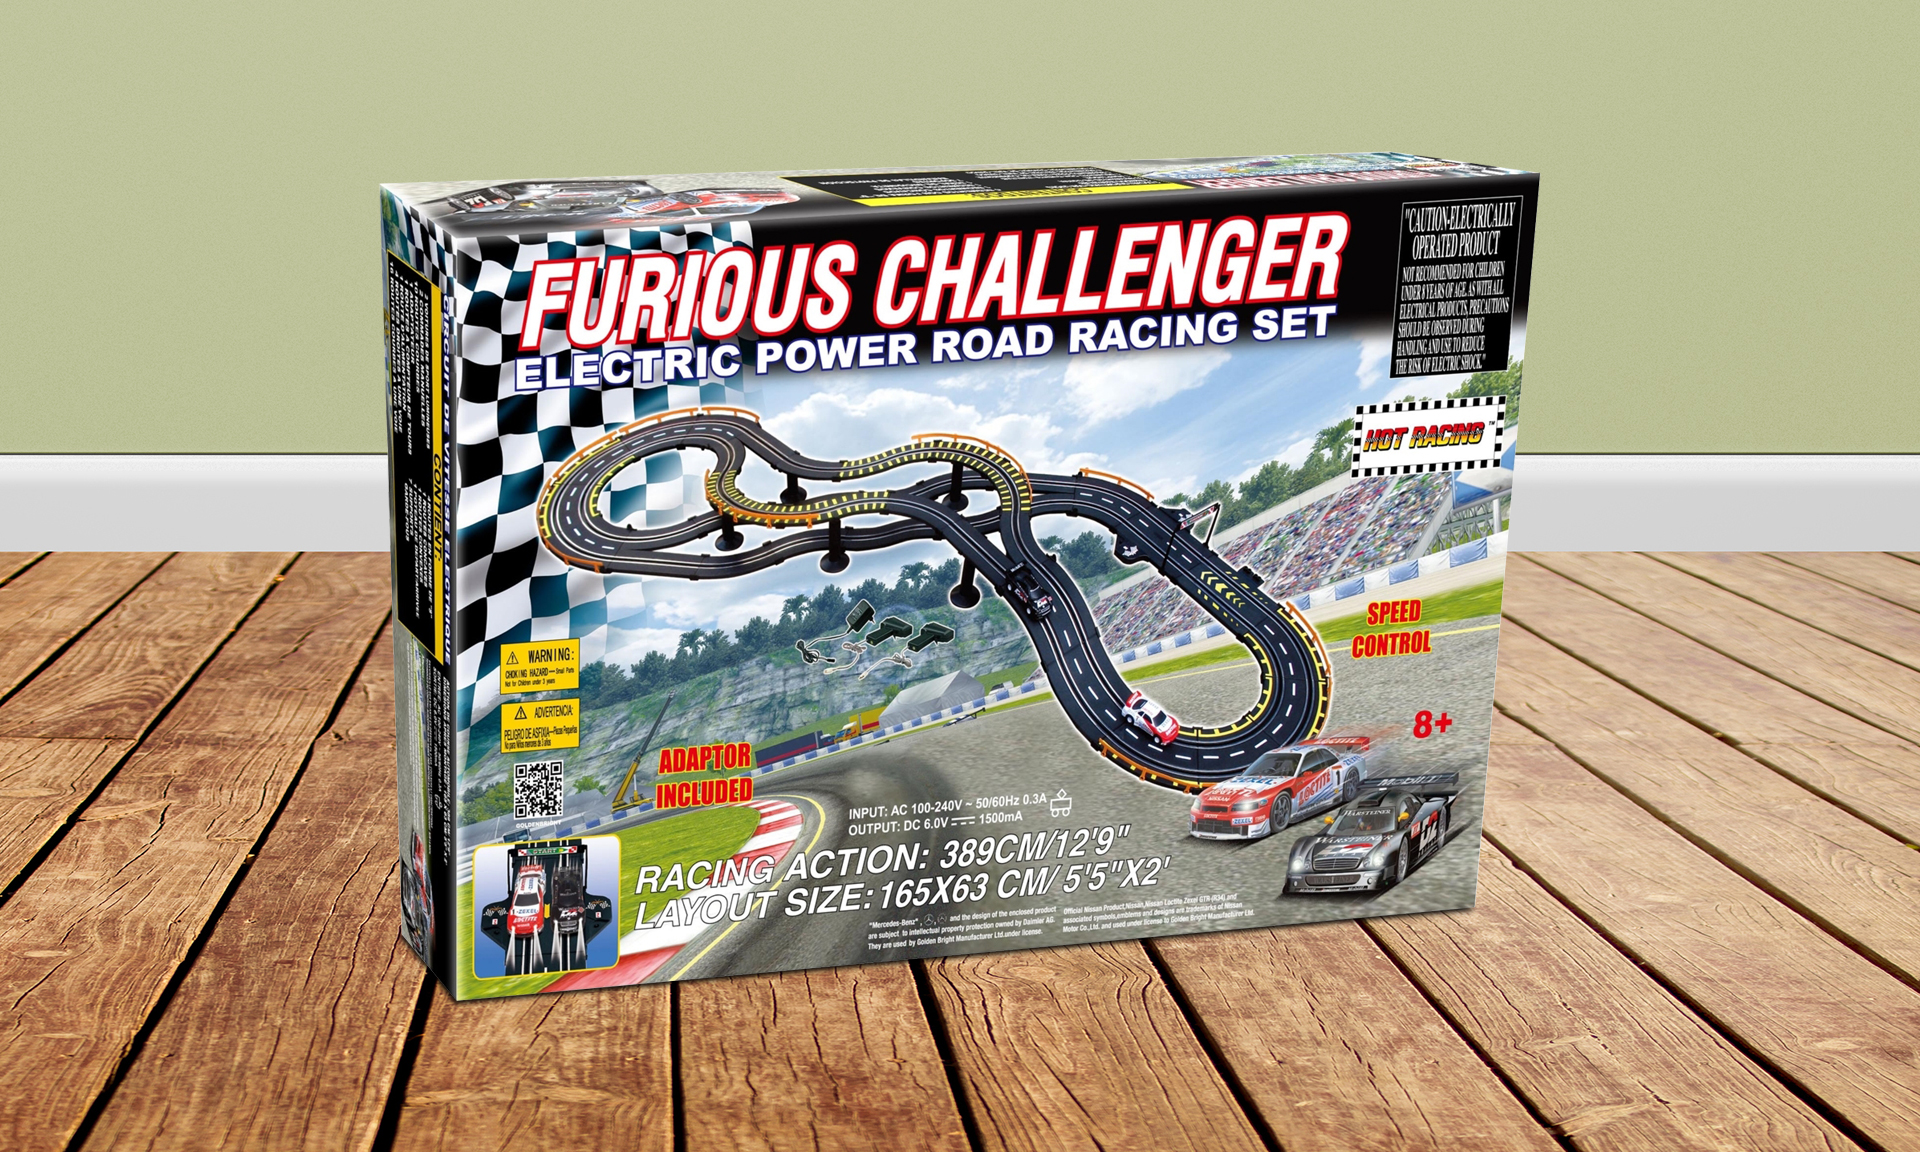 smyths toys recalls faulty racing toy set – which? news